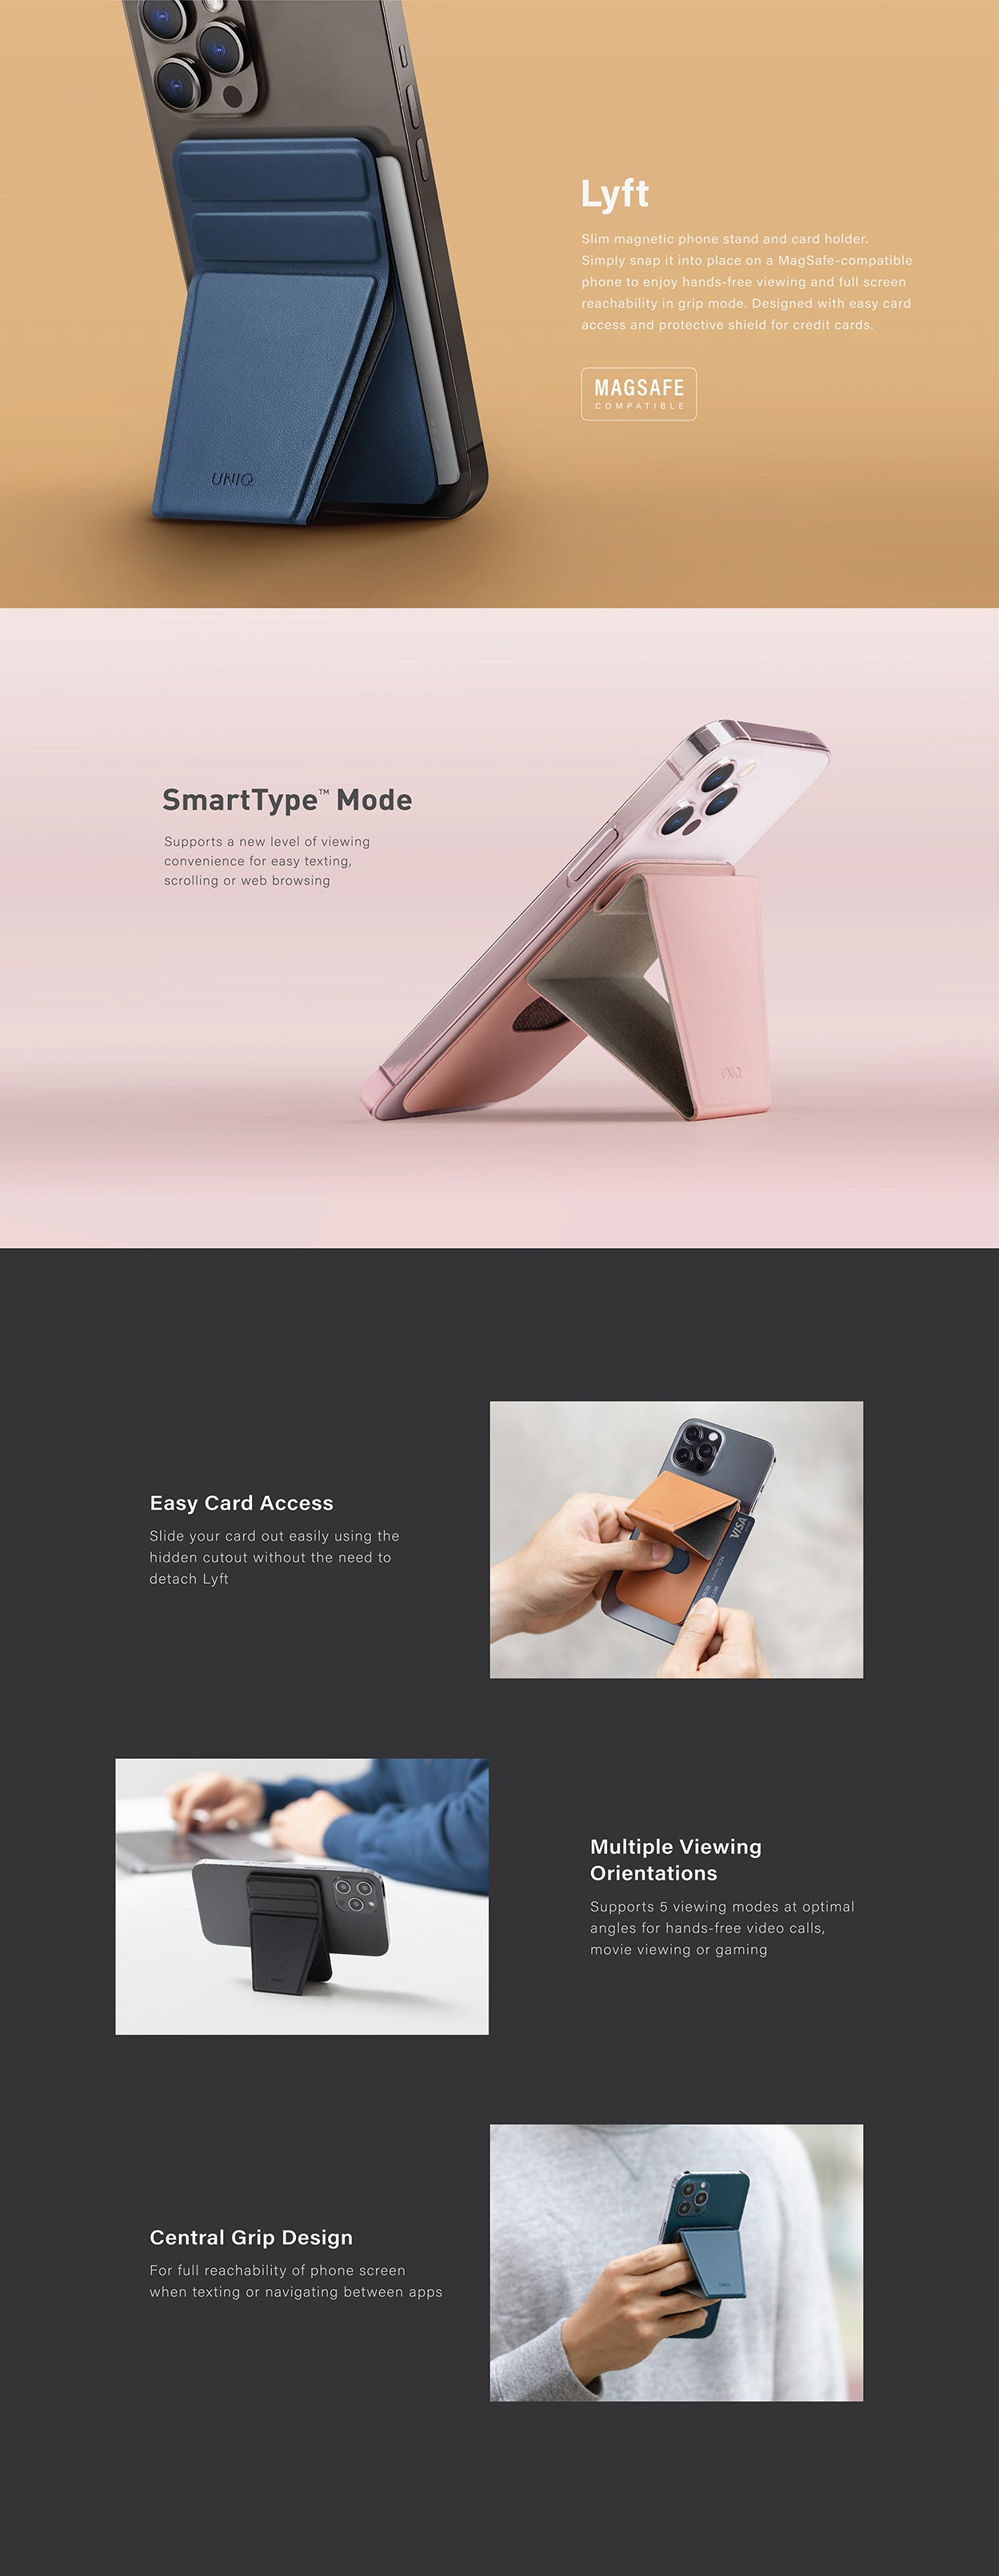 UNIQ Lyft Magnetic Stand/ Grip and Card Holder for iPhone 12 and 13. Compatible with MagSafe